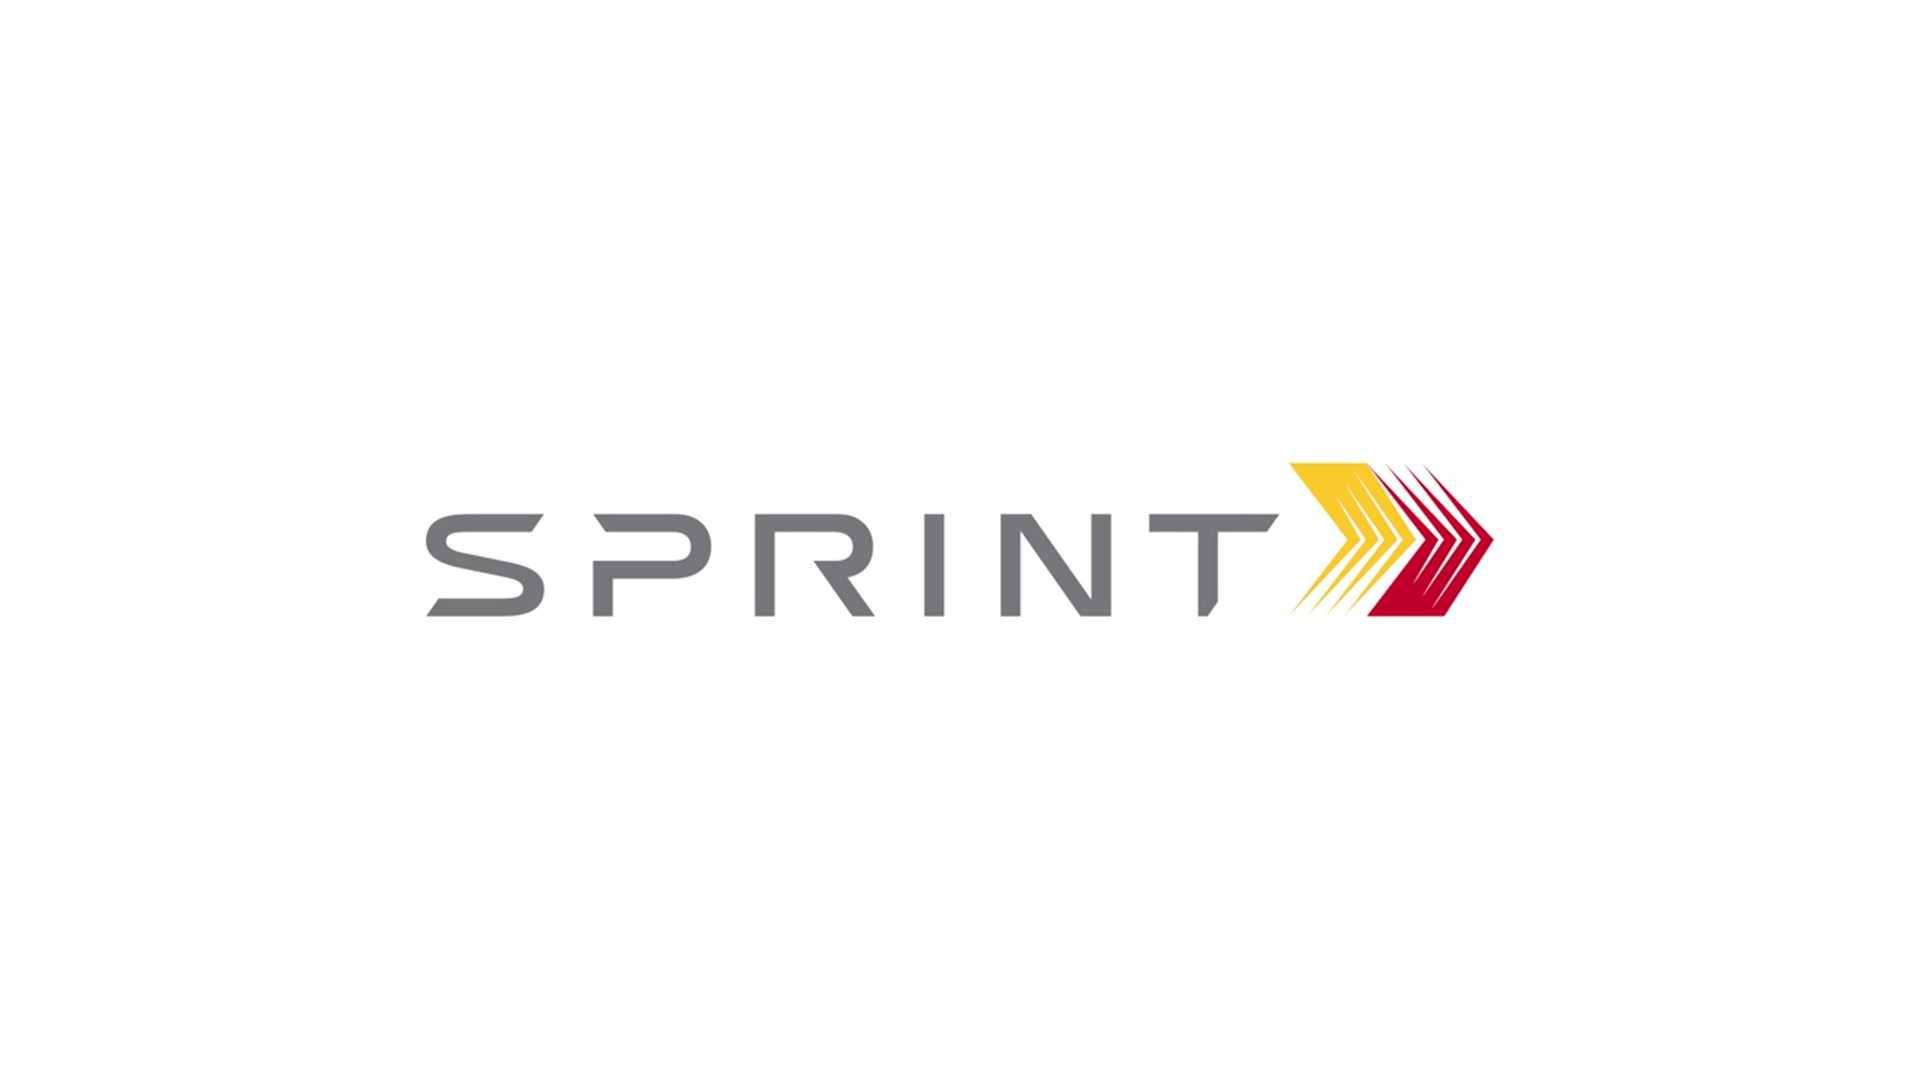 SPRINT Accelerator Thailand – Thailand's first specialized